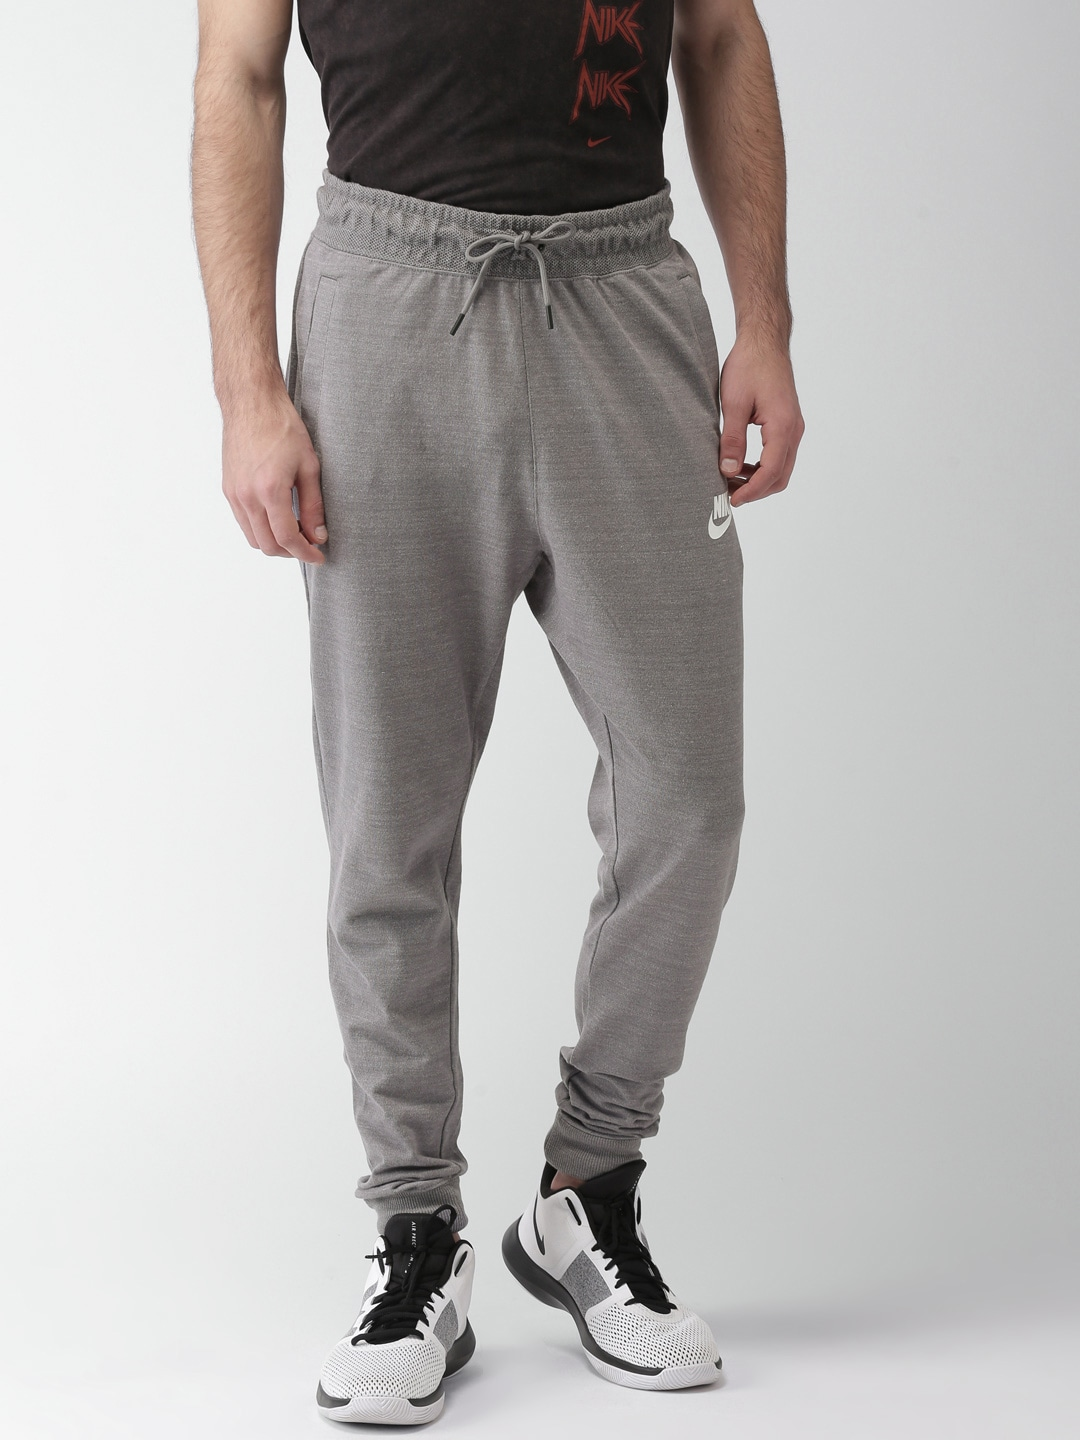 Nike Joggers - Buy Nike Joggers online in India ac8946763e82